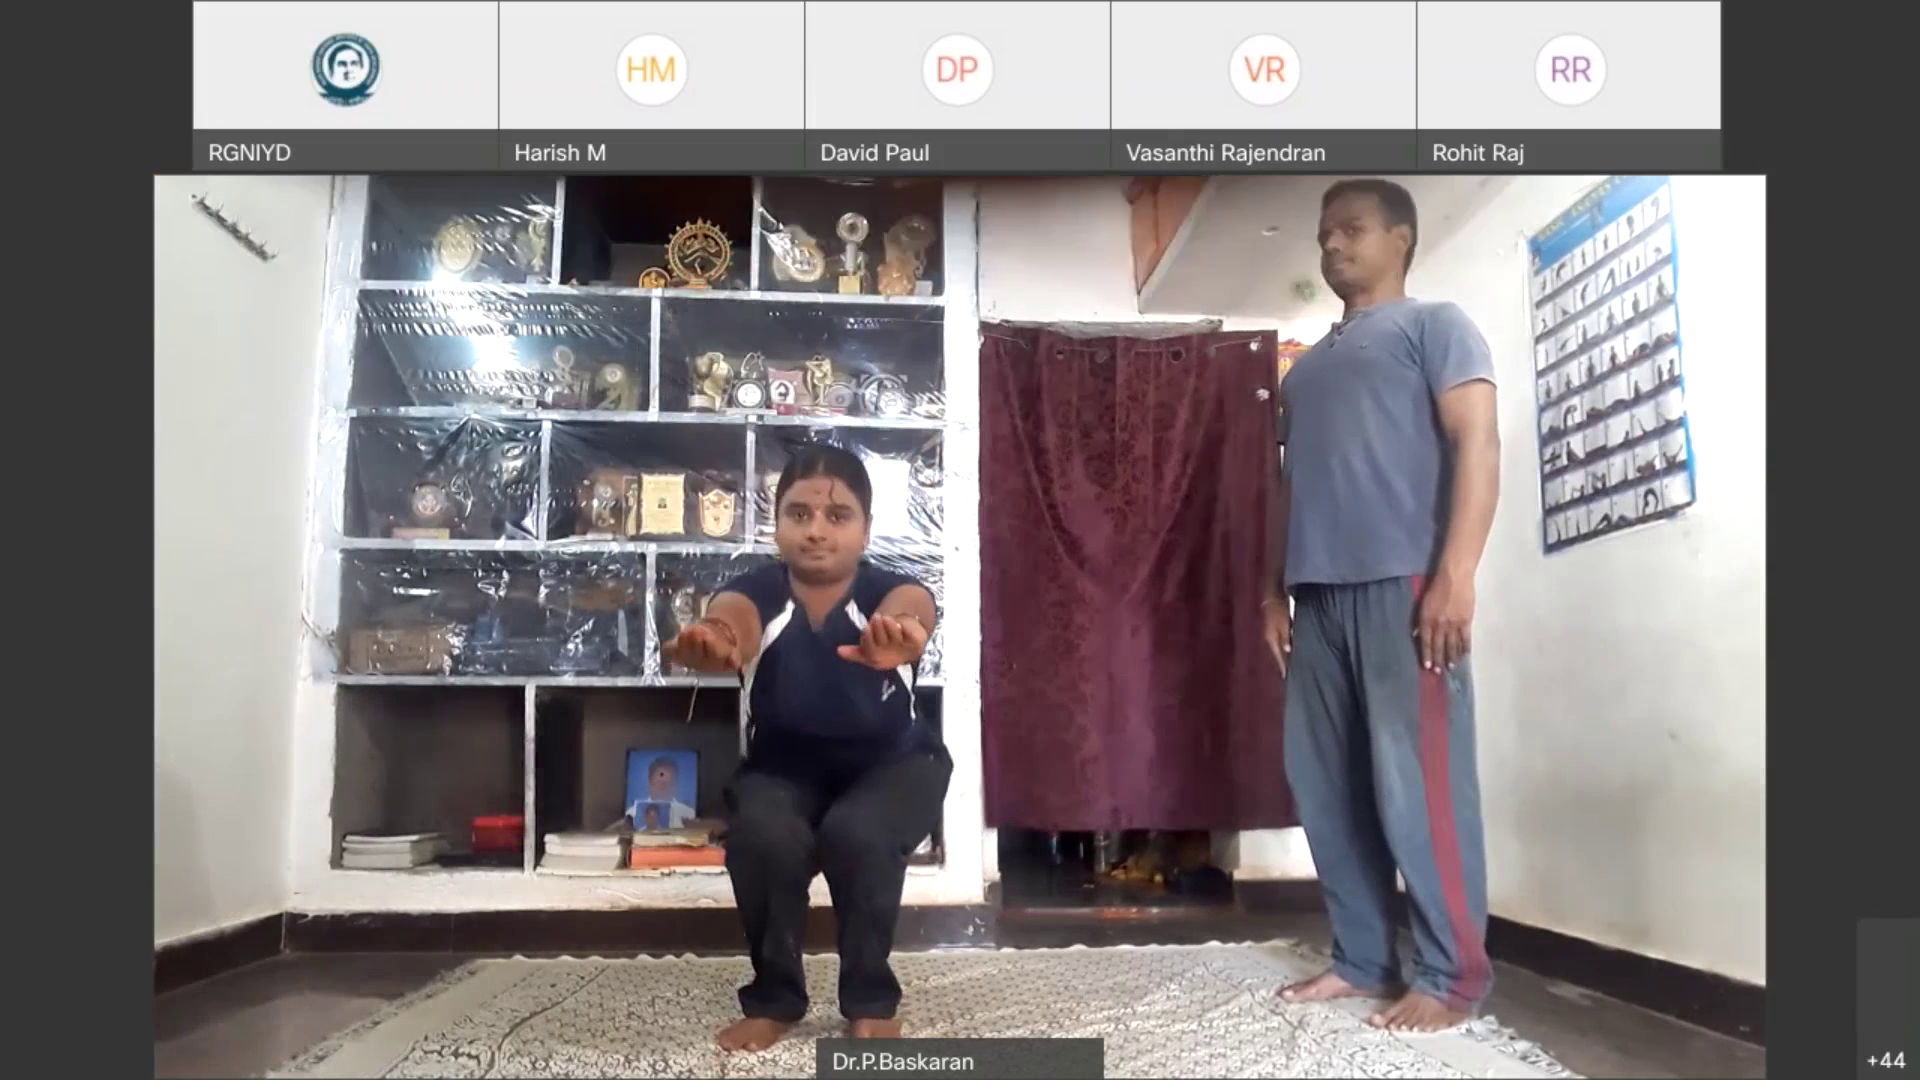 Dr. P. Baskaran, International Yoga Champion and Yoga Expert, Chennai demonstrating simple Yoga Poses for overcoming sedentary lifestyle during Corona Pandemic period by staying at home